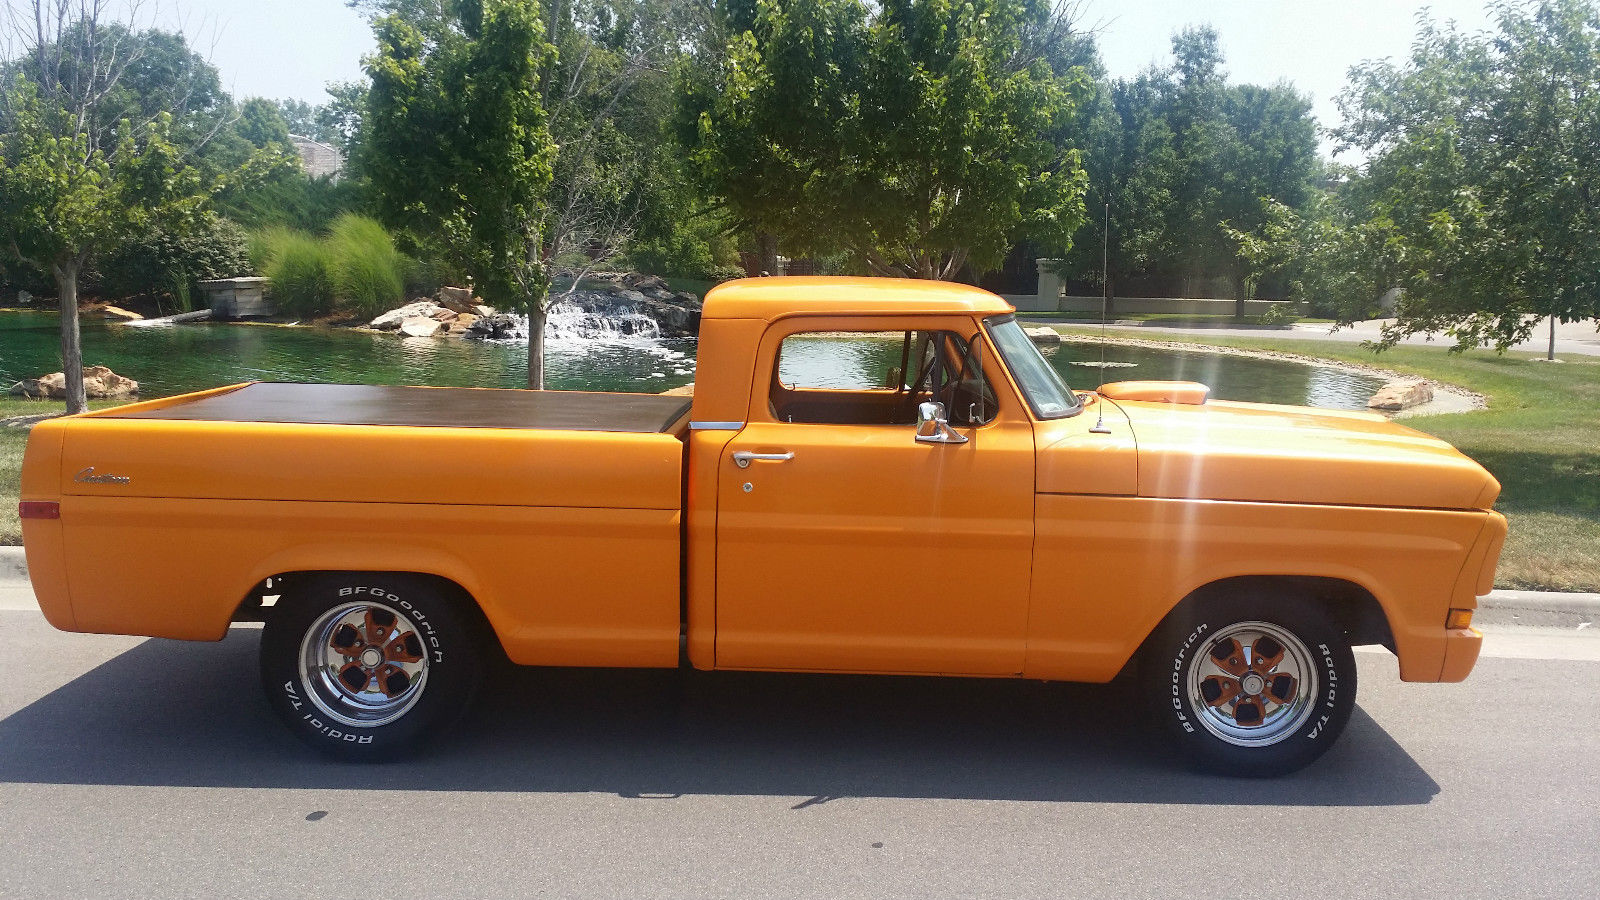 ford f100 custom show truck chopped orange f100 muscle truck. Black Bedroom Furniture Sets. Home Design Ideas